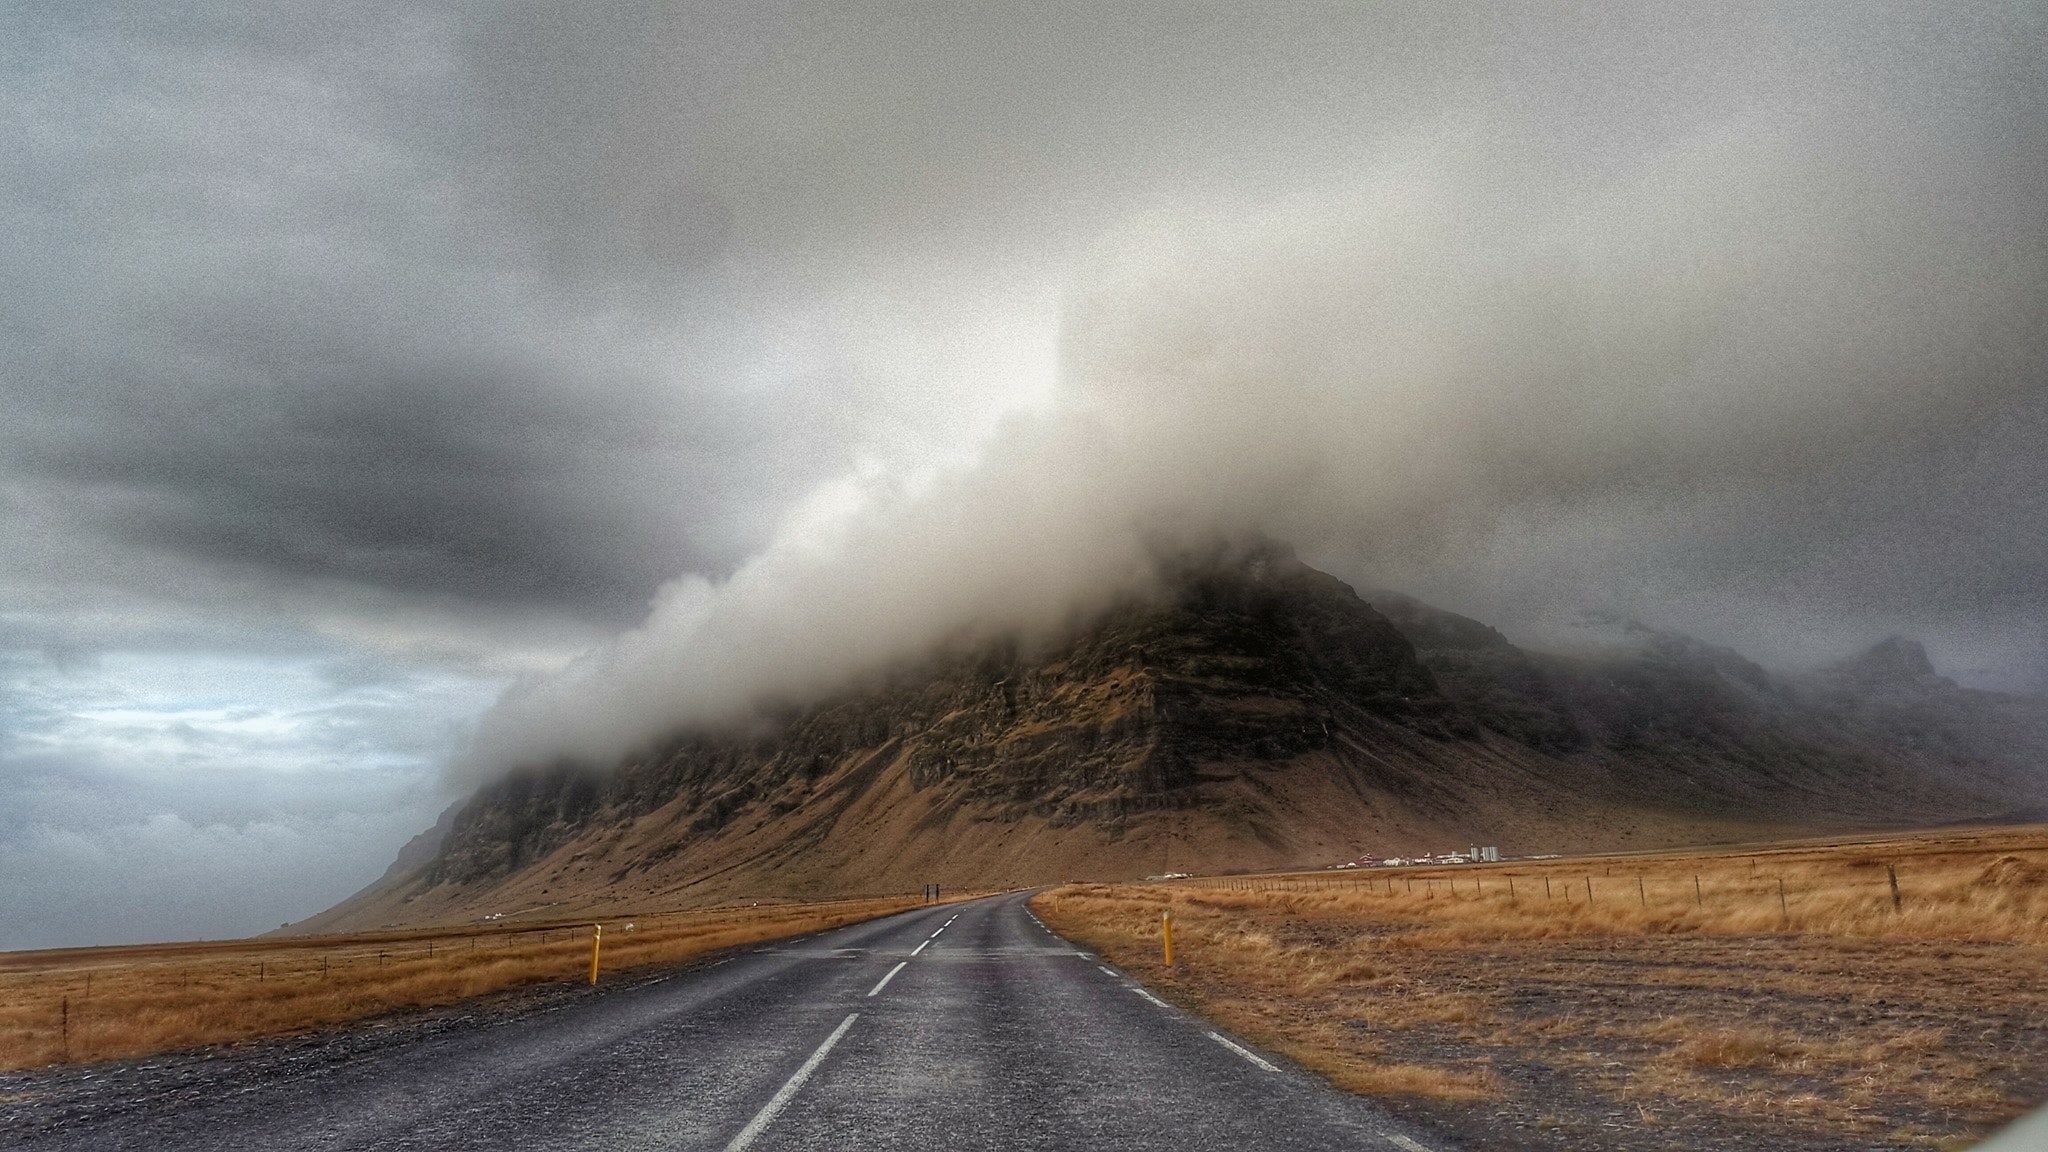 Storm Clouds over Highway, Cloud, Murky, Travel, Thunderstorm, HQ Photo